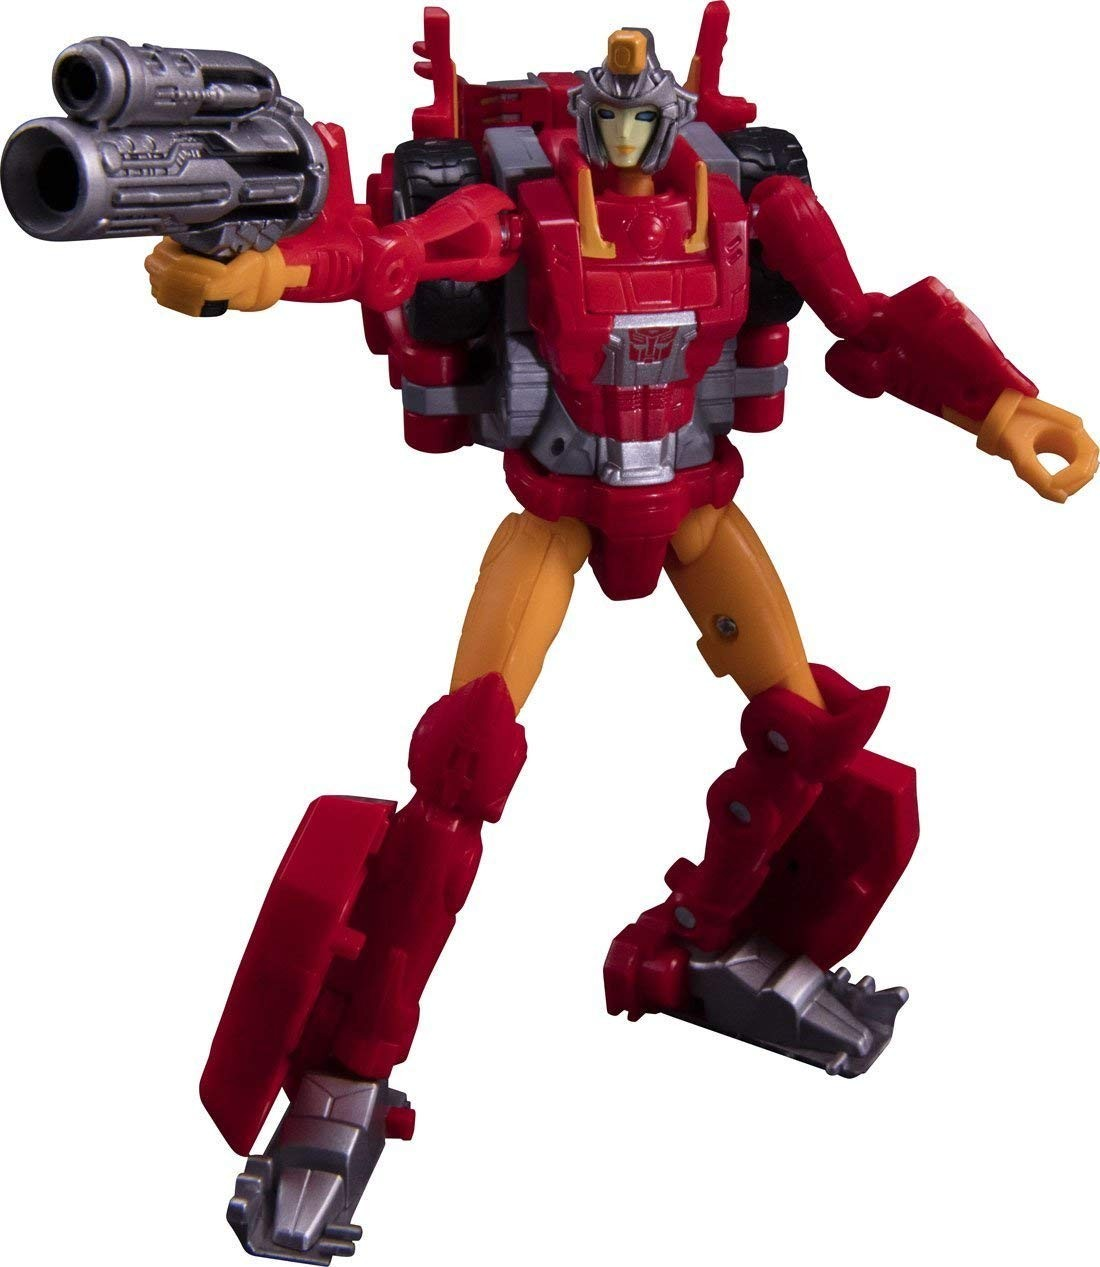 Transformers News: Power of the Primes Wave 4 Deluxe Novastar currently available on Amazon.com